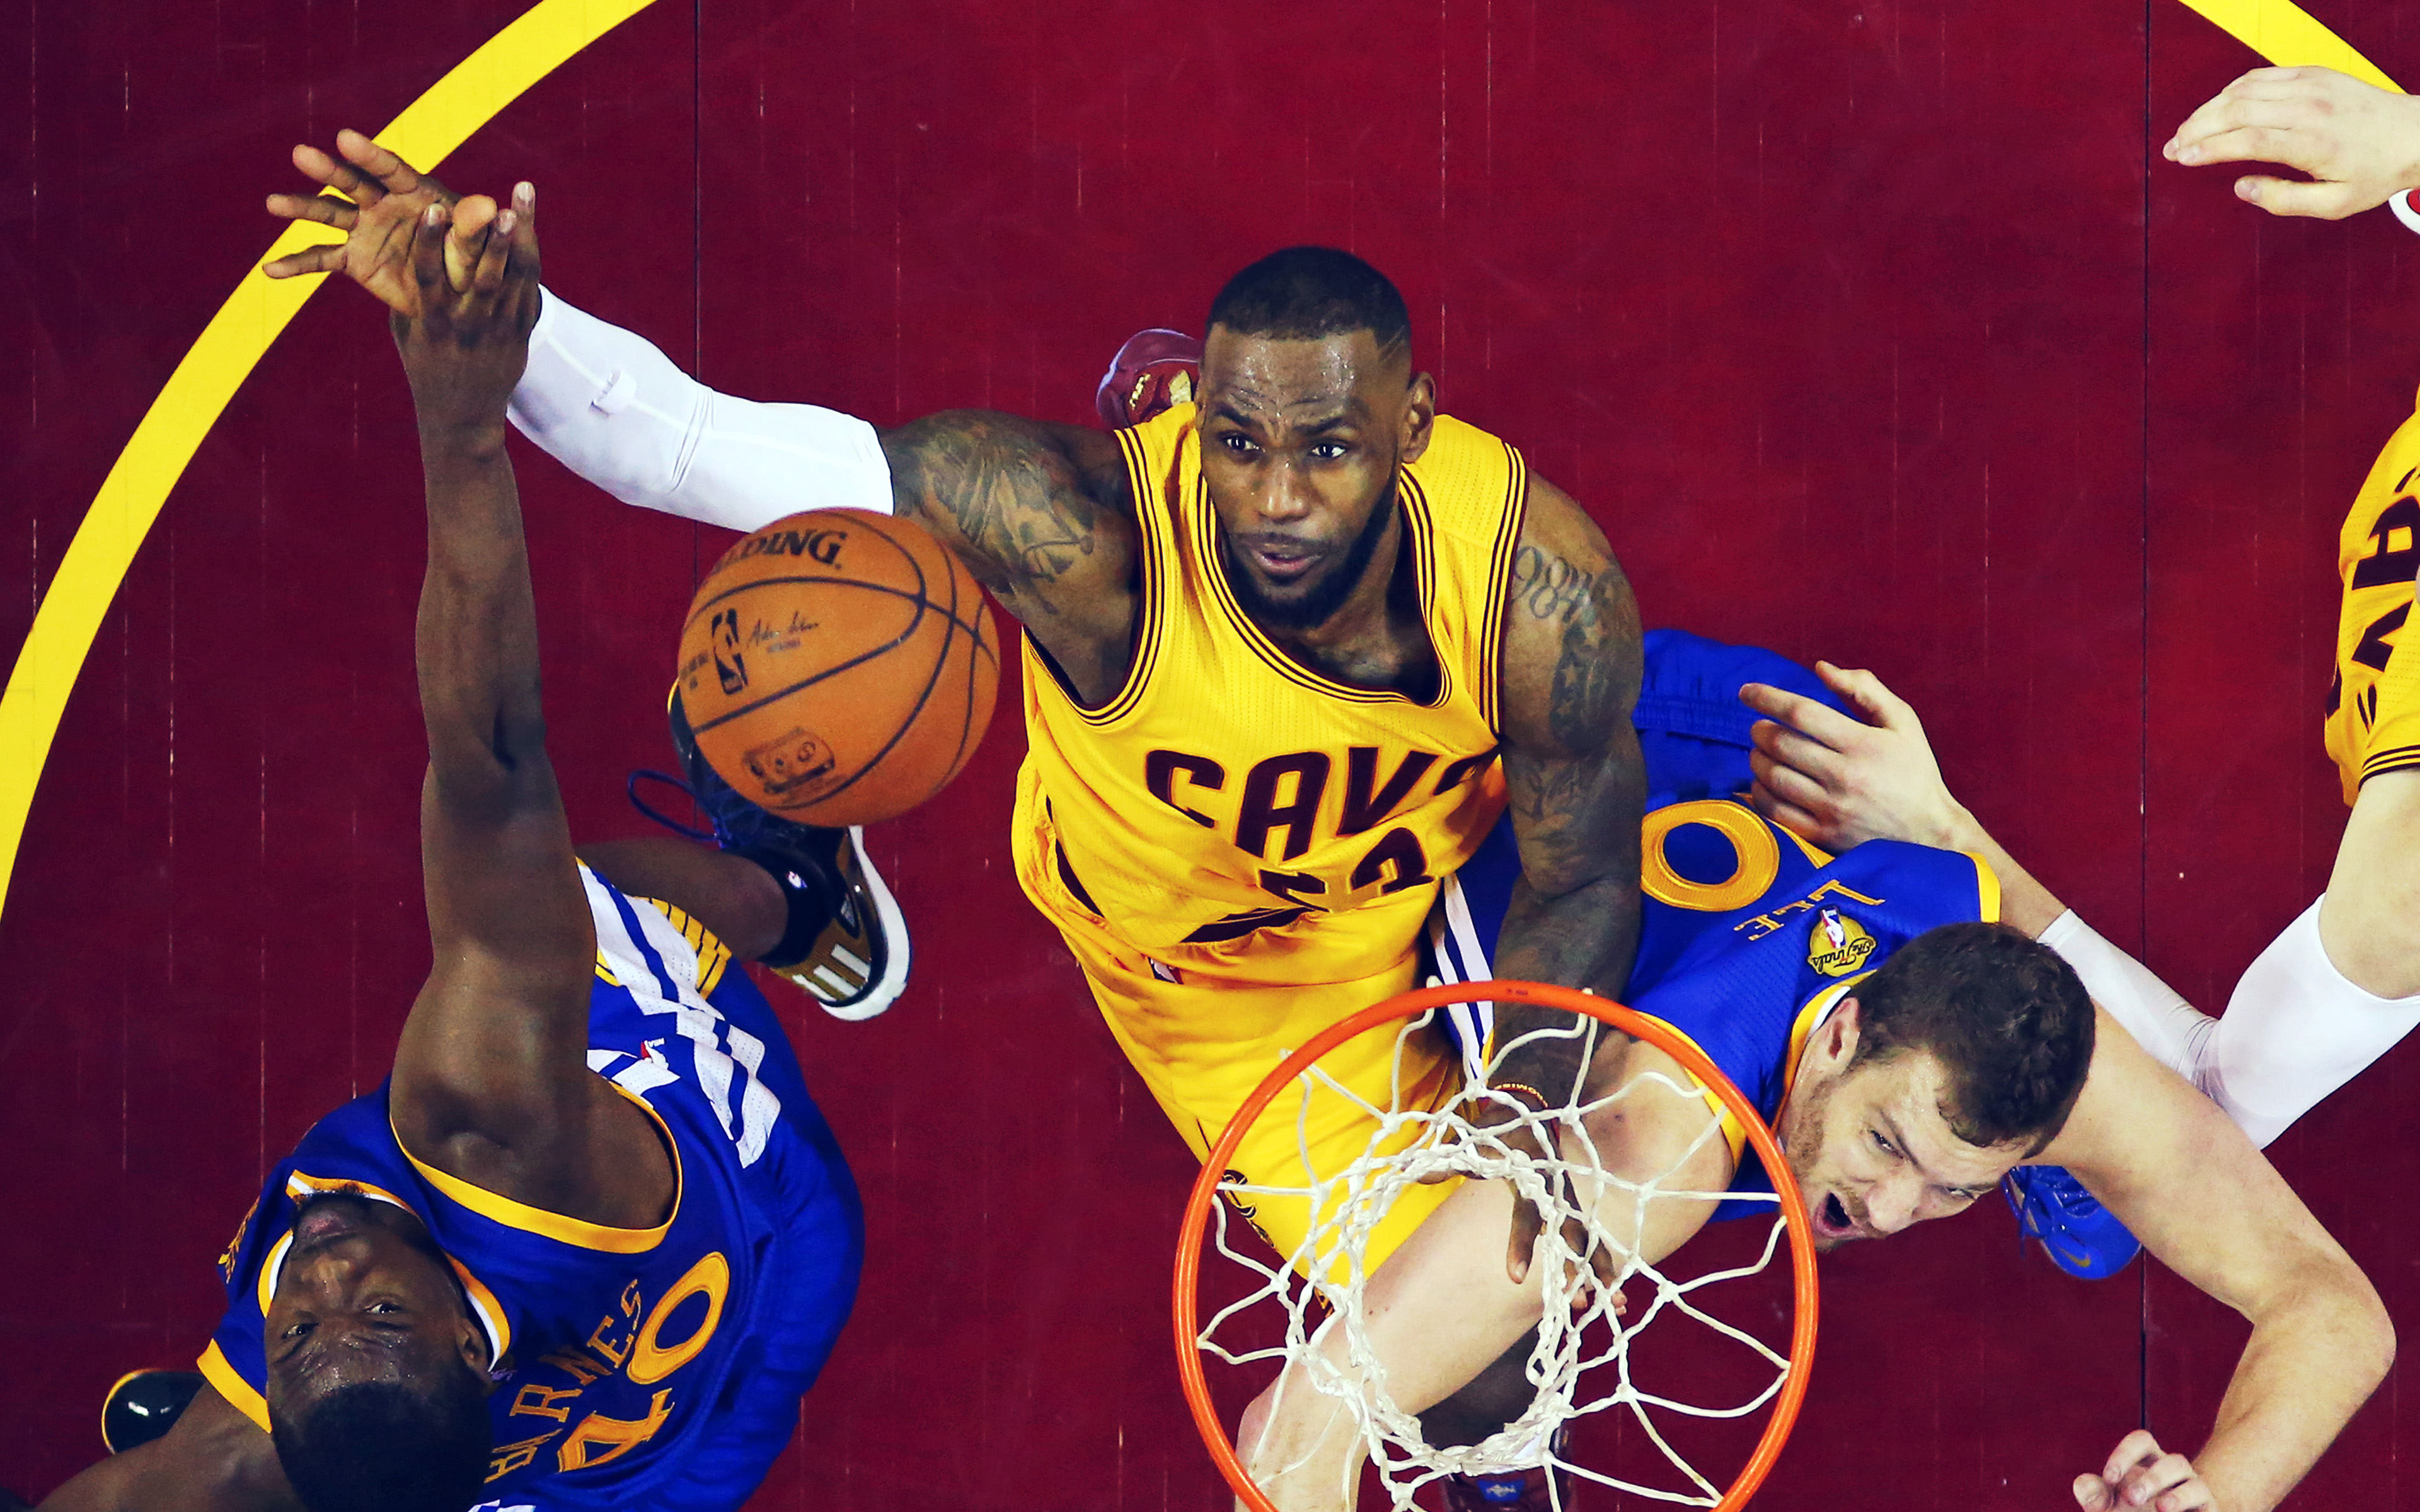 Hj03 Lebron James Nba Basketball Rebound Wallpaper